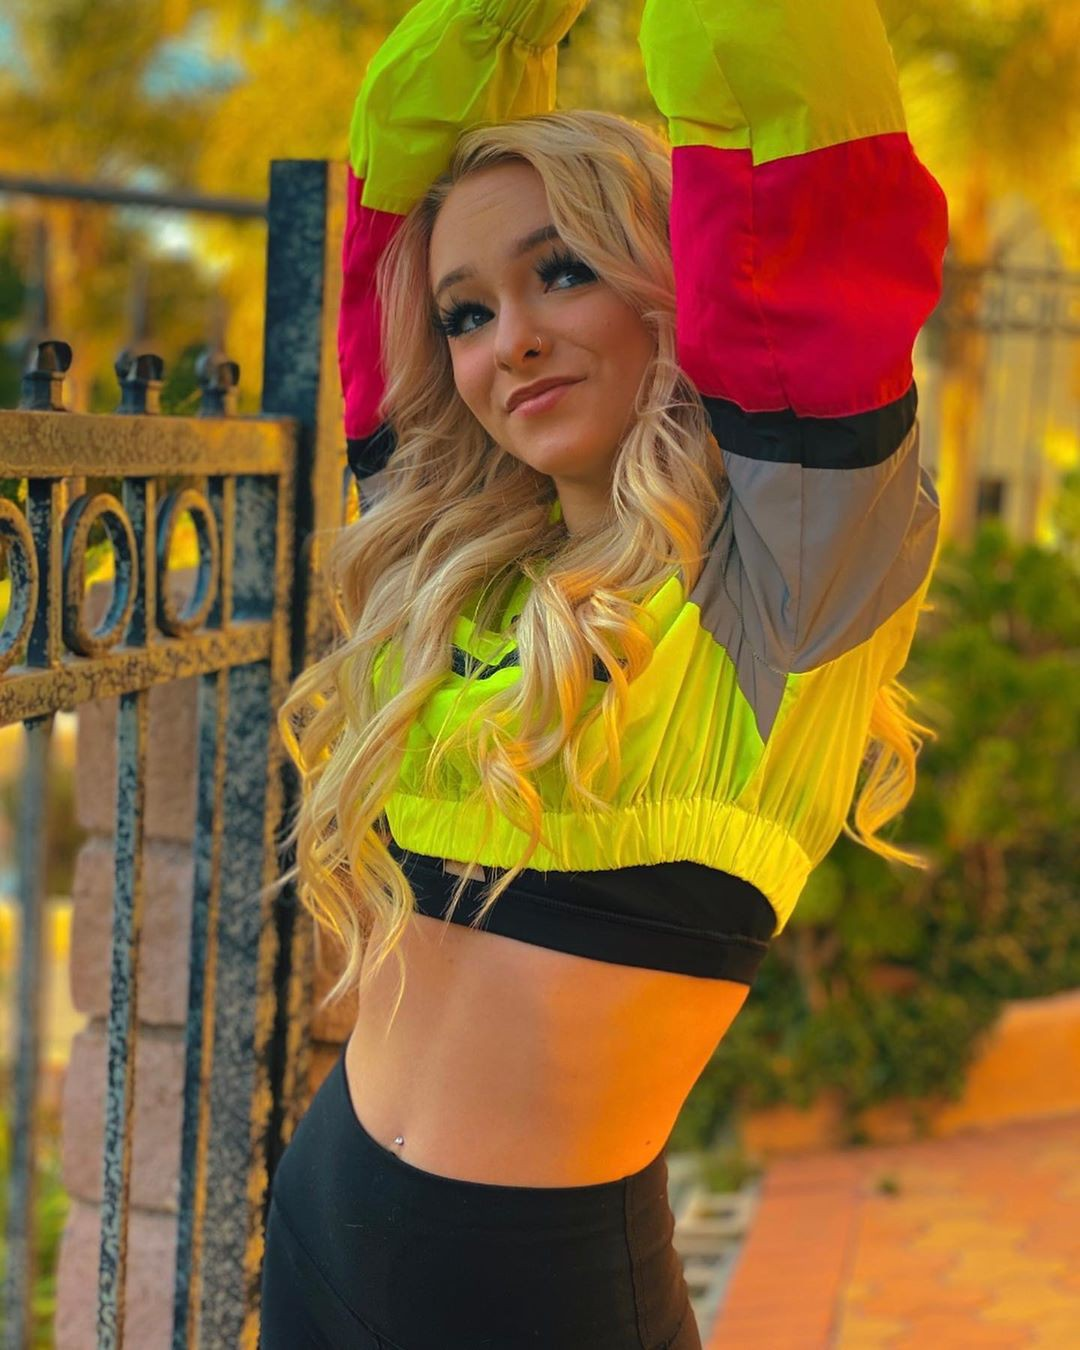 yellow dresses ideas with crop top, cute girls photos, beautiful blond hairs